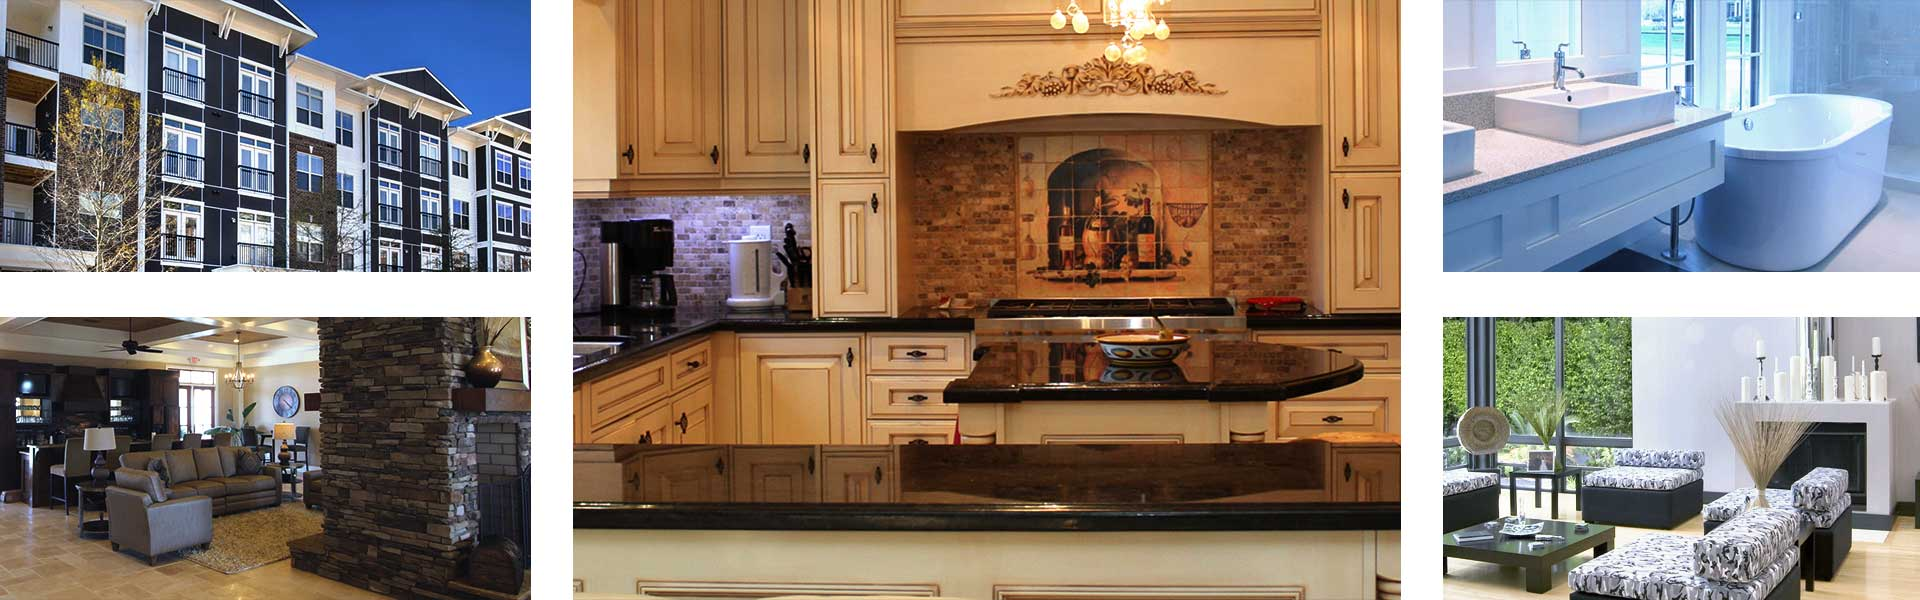 House Remodeling Contractors Near Me Kitchen Design Remodeling Contractors Near Me Avatar Contractors